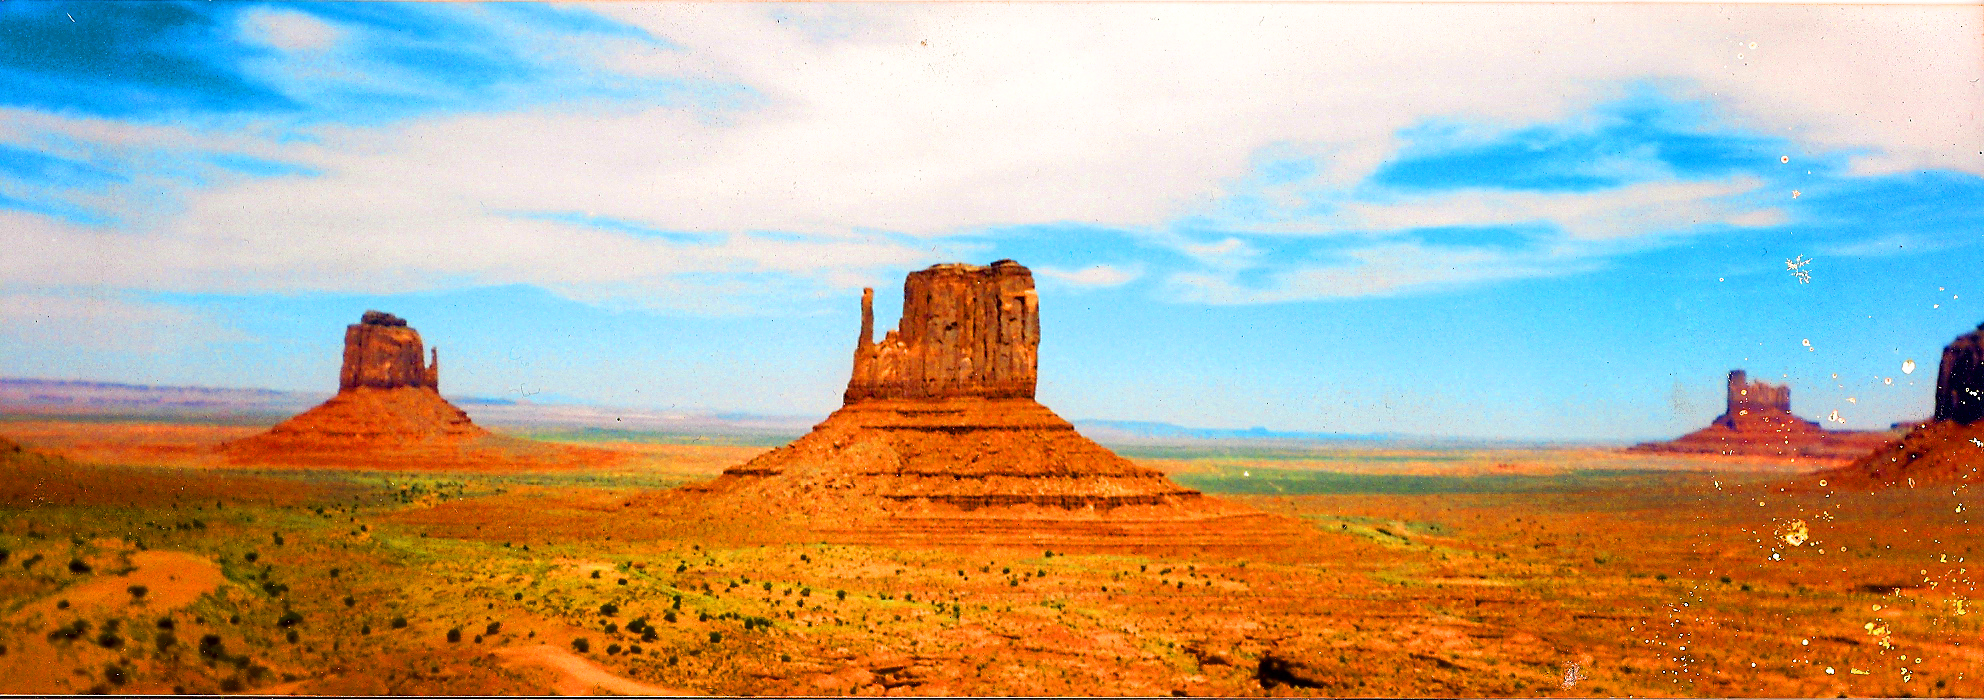 Monument Valley cowboylands